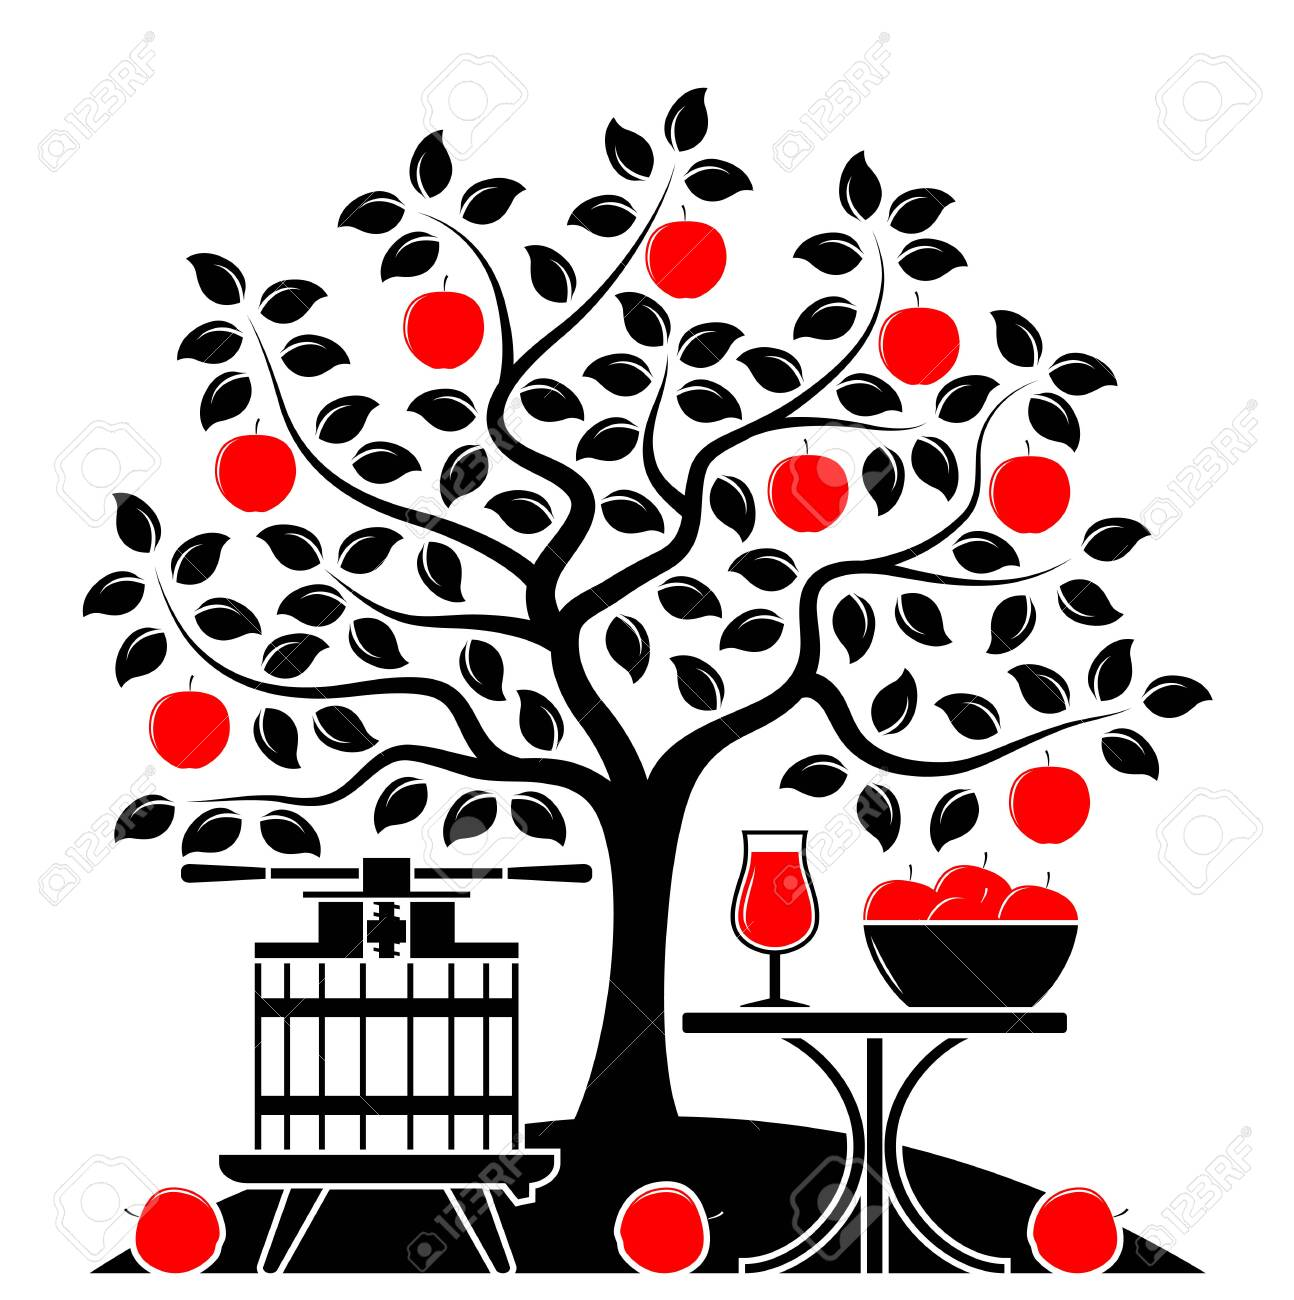 vector apple tree, fruit press and table with apple drink isolated on white background - 148019912